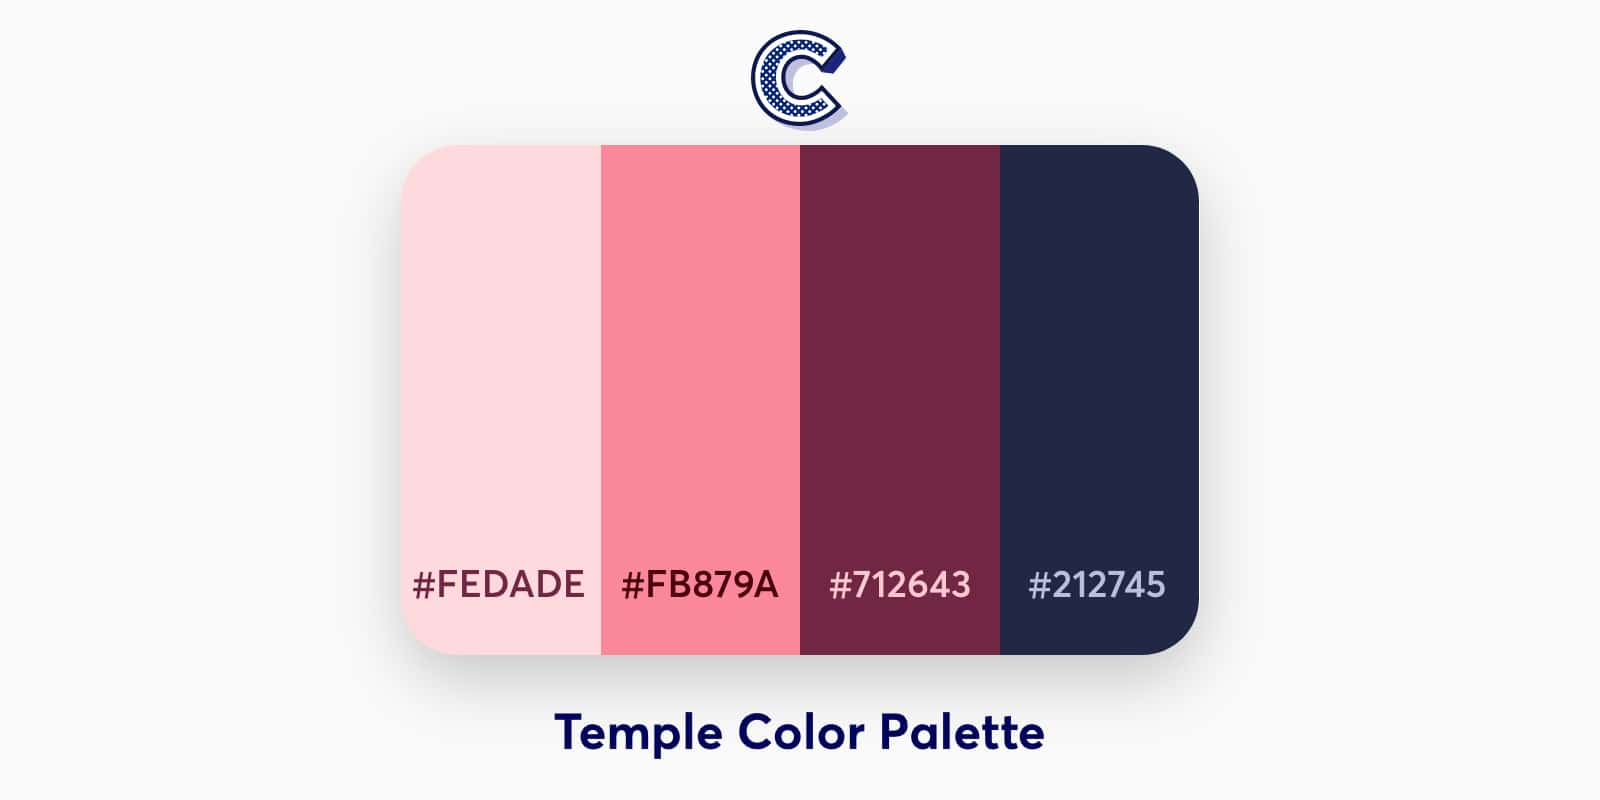 the featured image of temple color palette